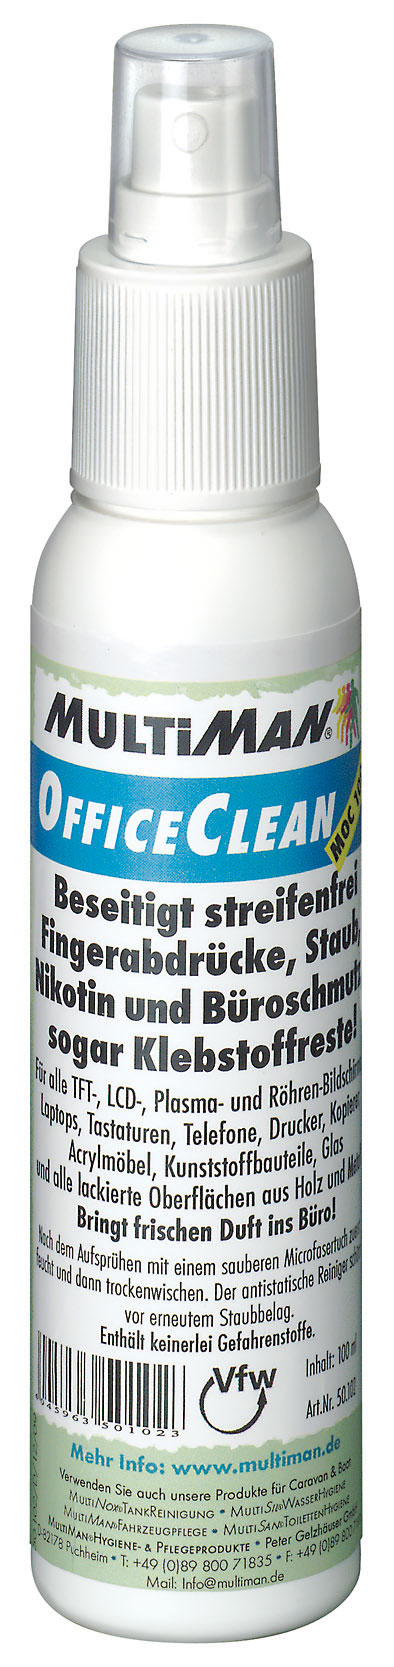 Ausr-stung_pflegen_MultiMan_OfficeClean_100_Pumpspr-hflasche